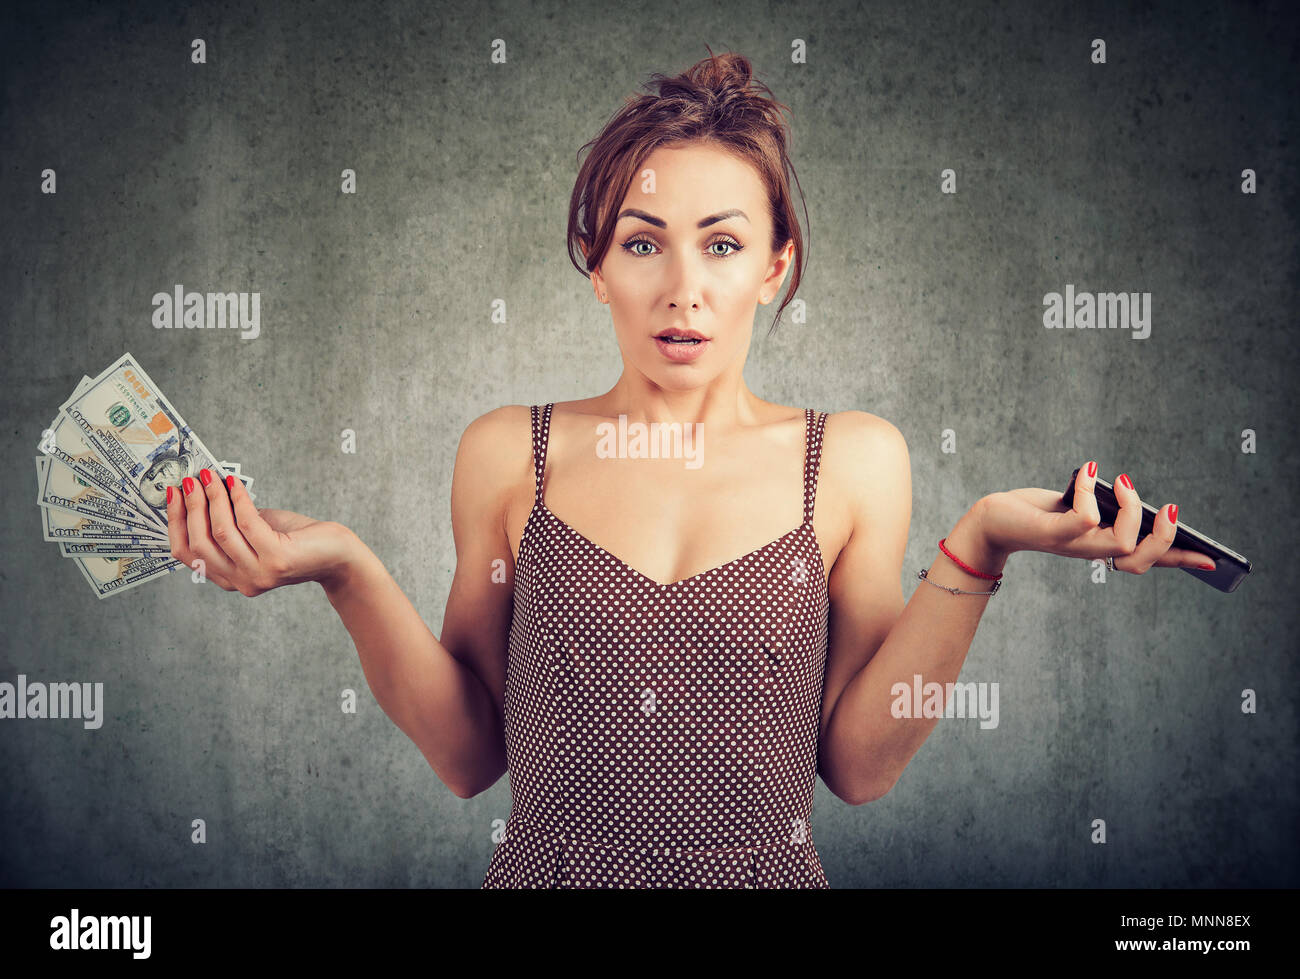 Confused displeased young woman holding smart phone and money dollar cash, unhappy with cellular service charges - Stock Image